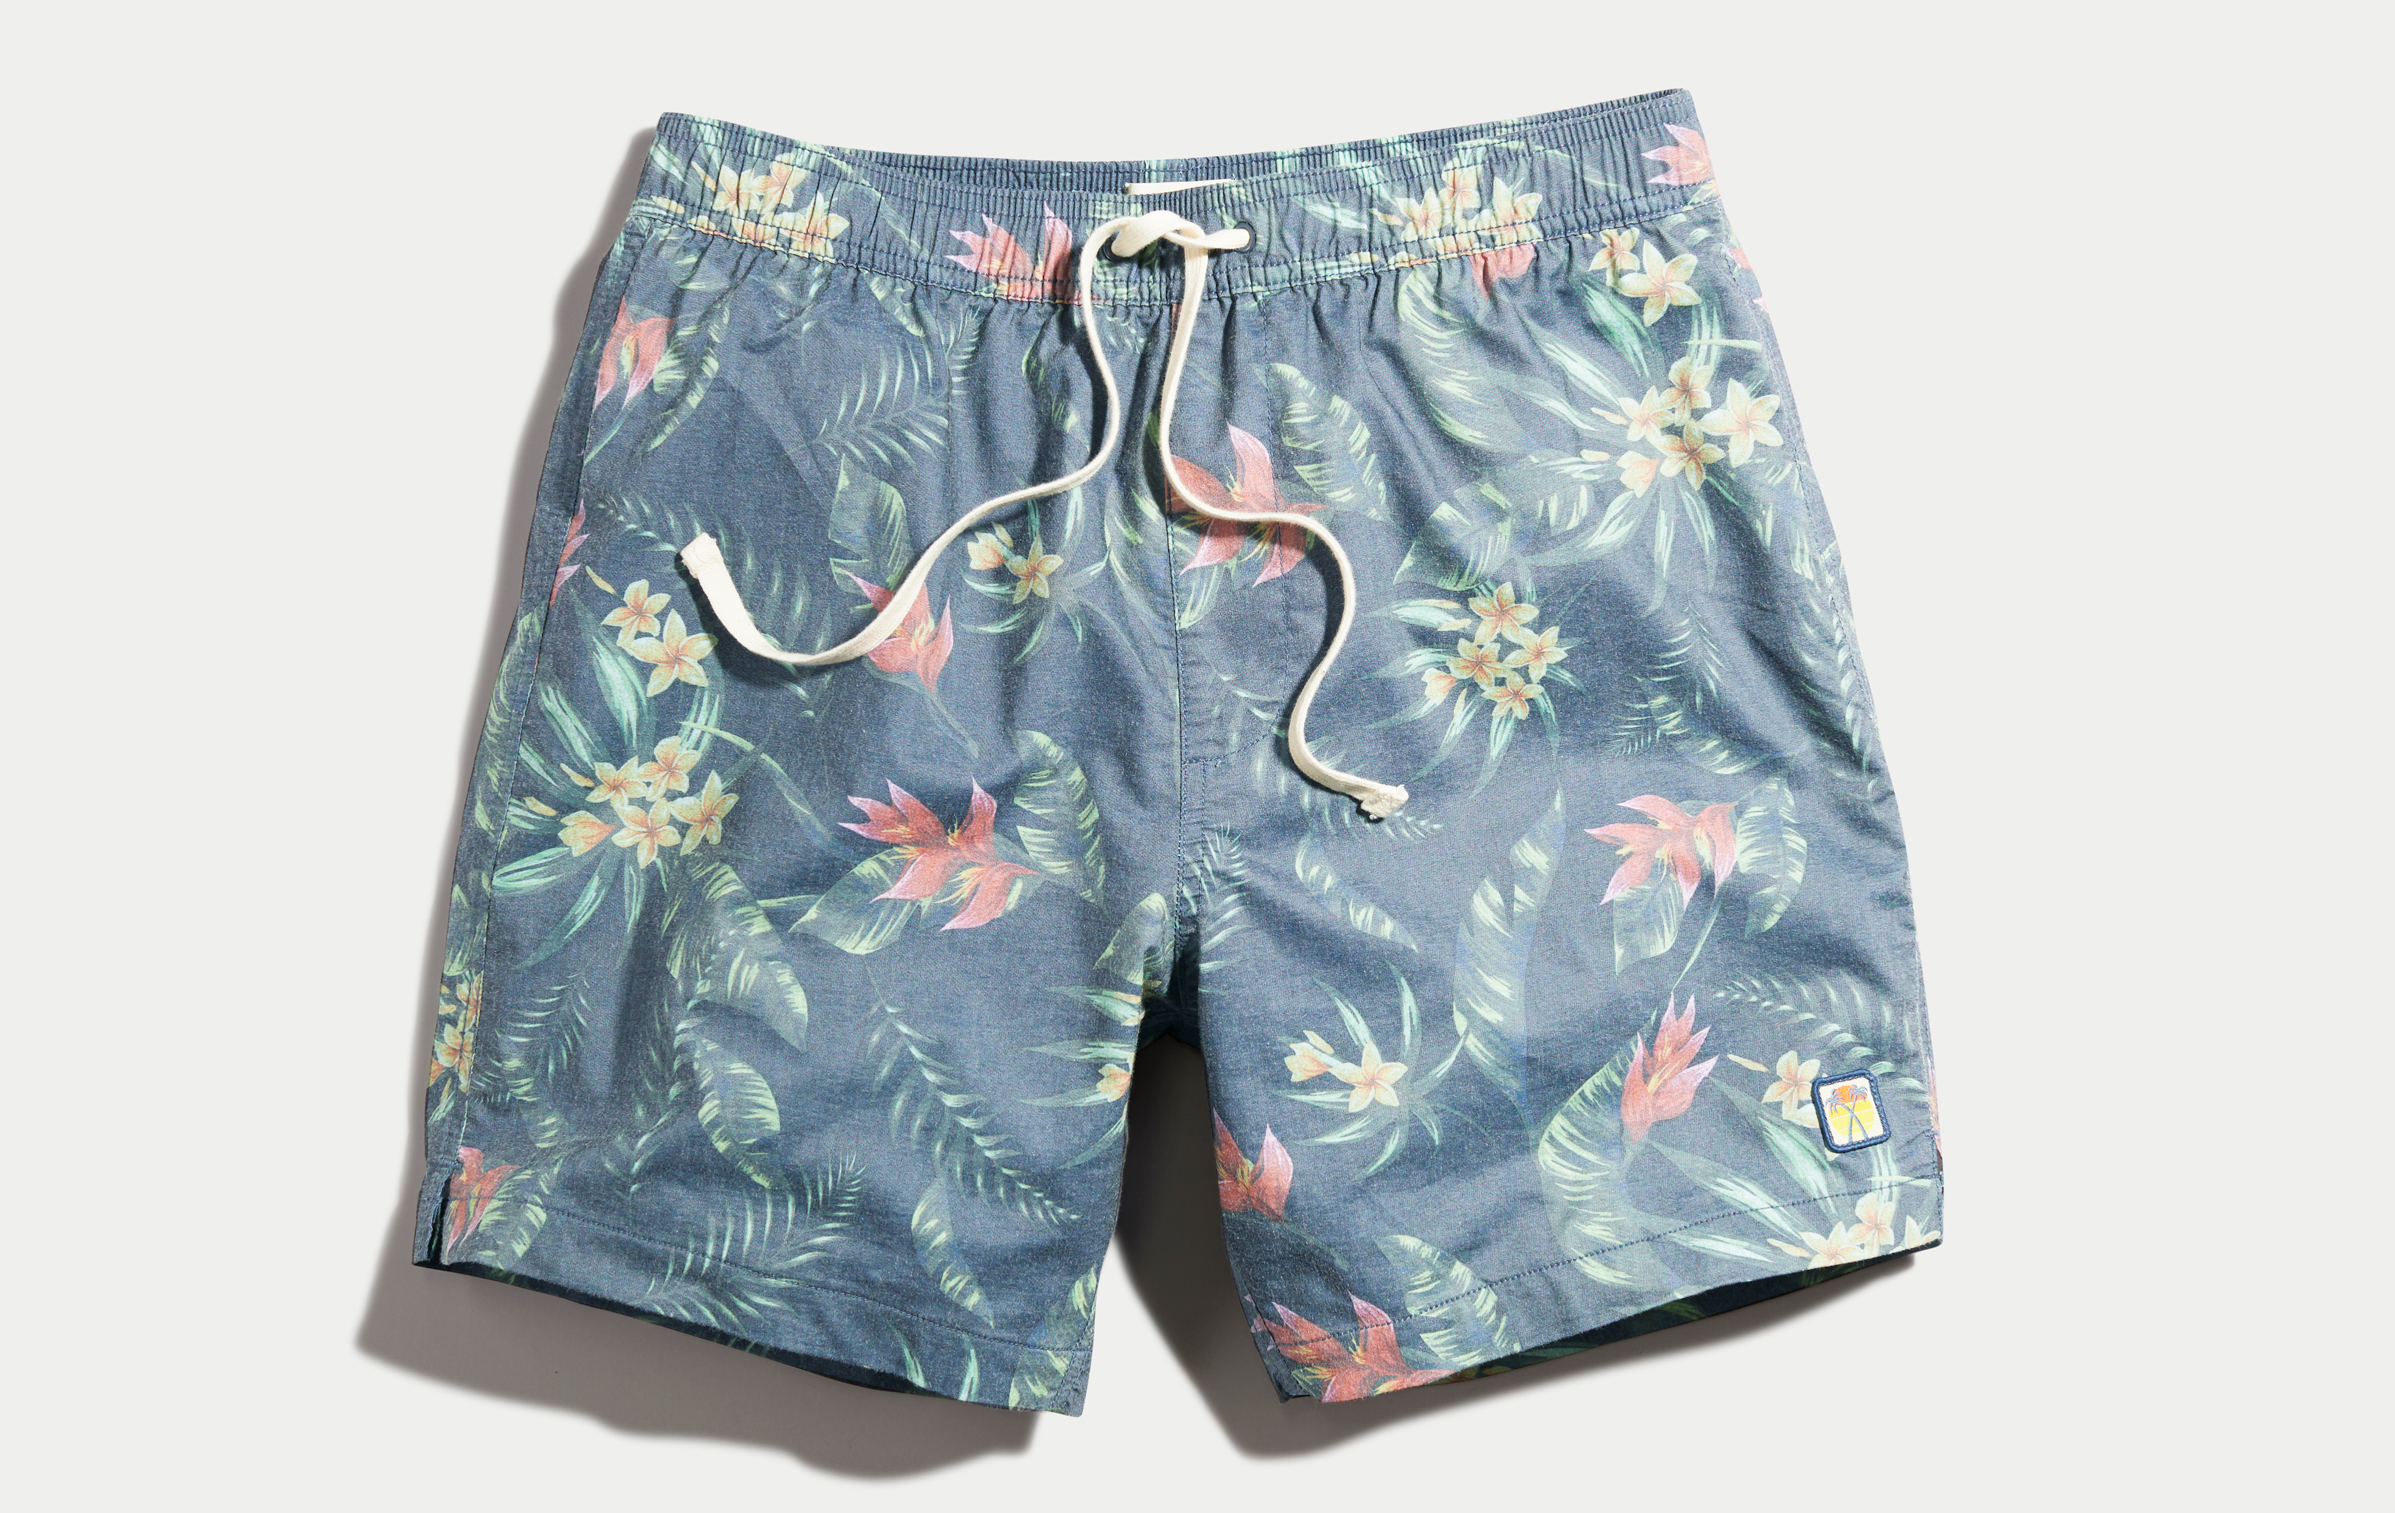 slater swim trunks - marine layer CQOGRQR